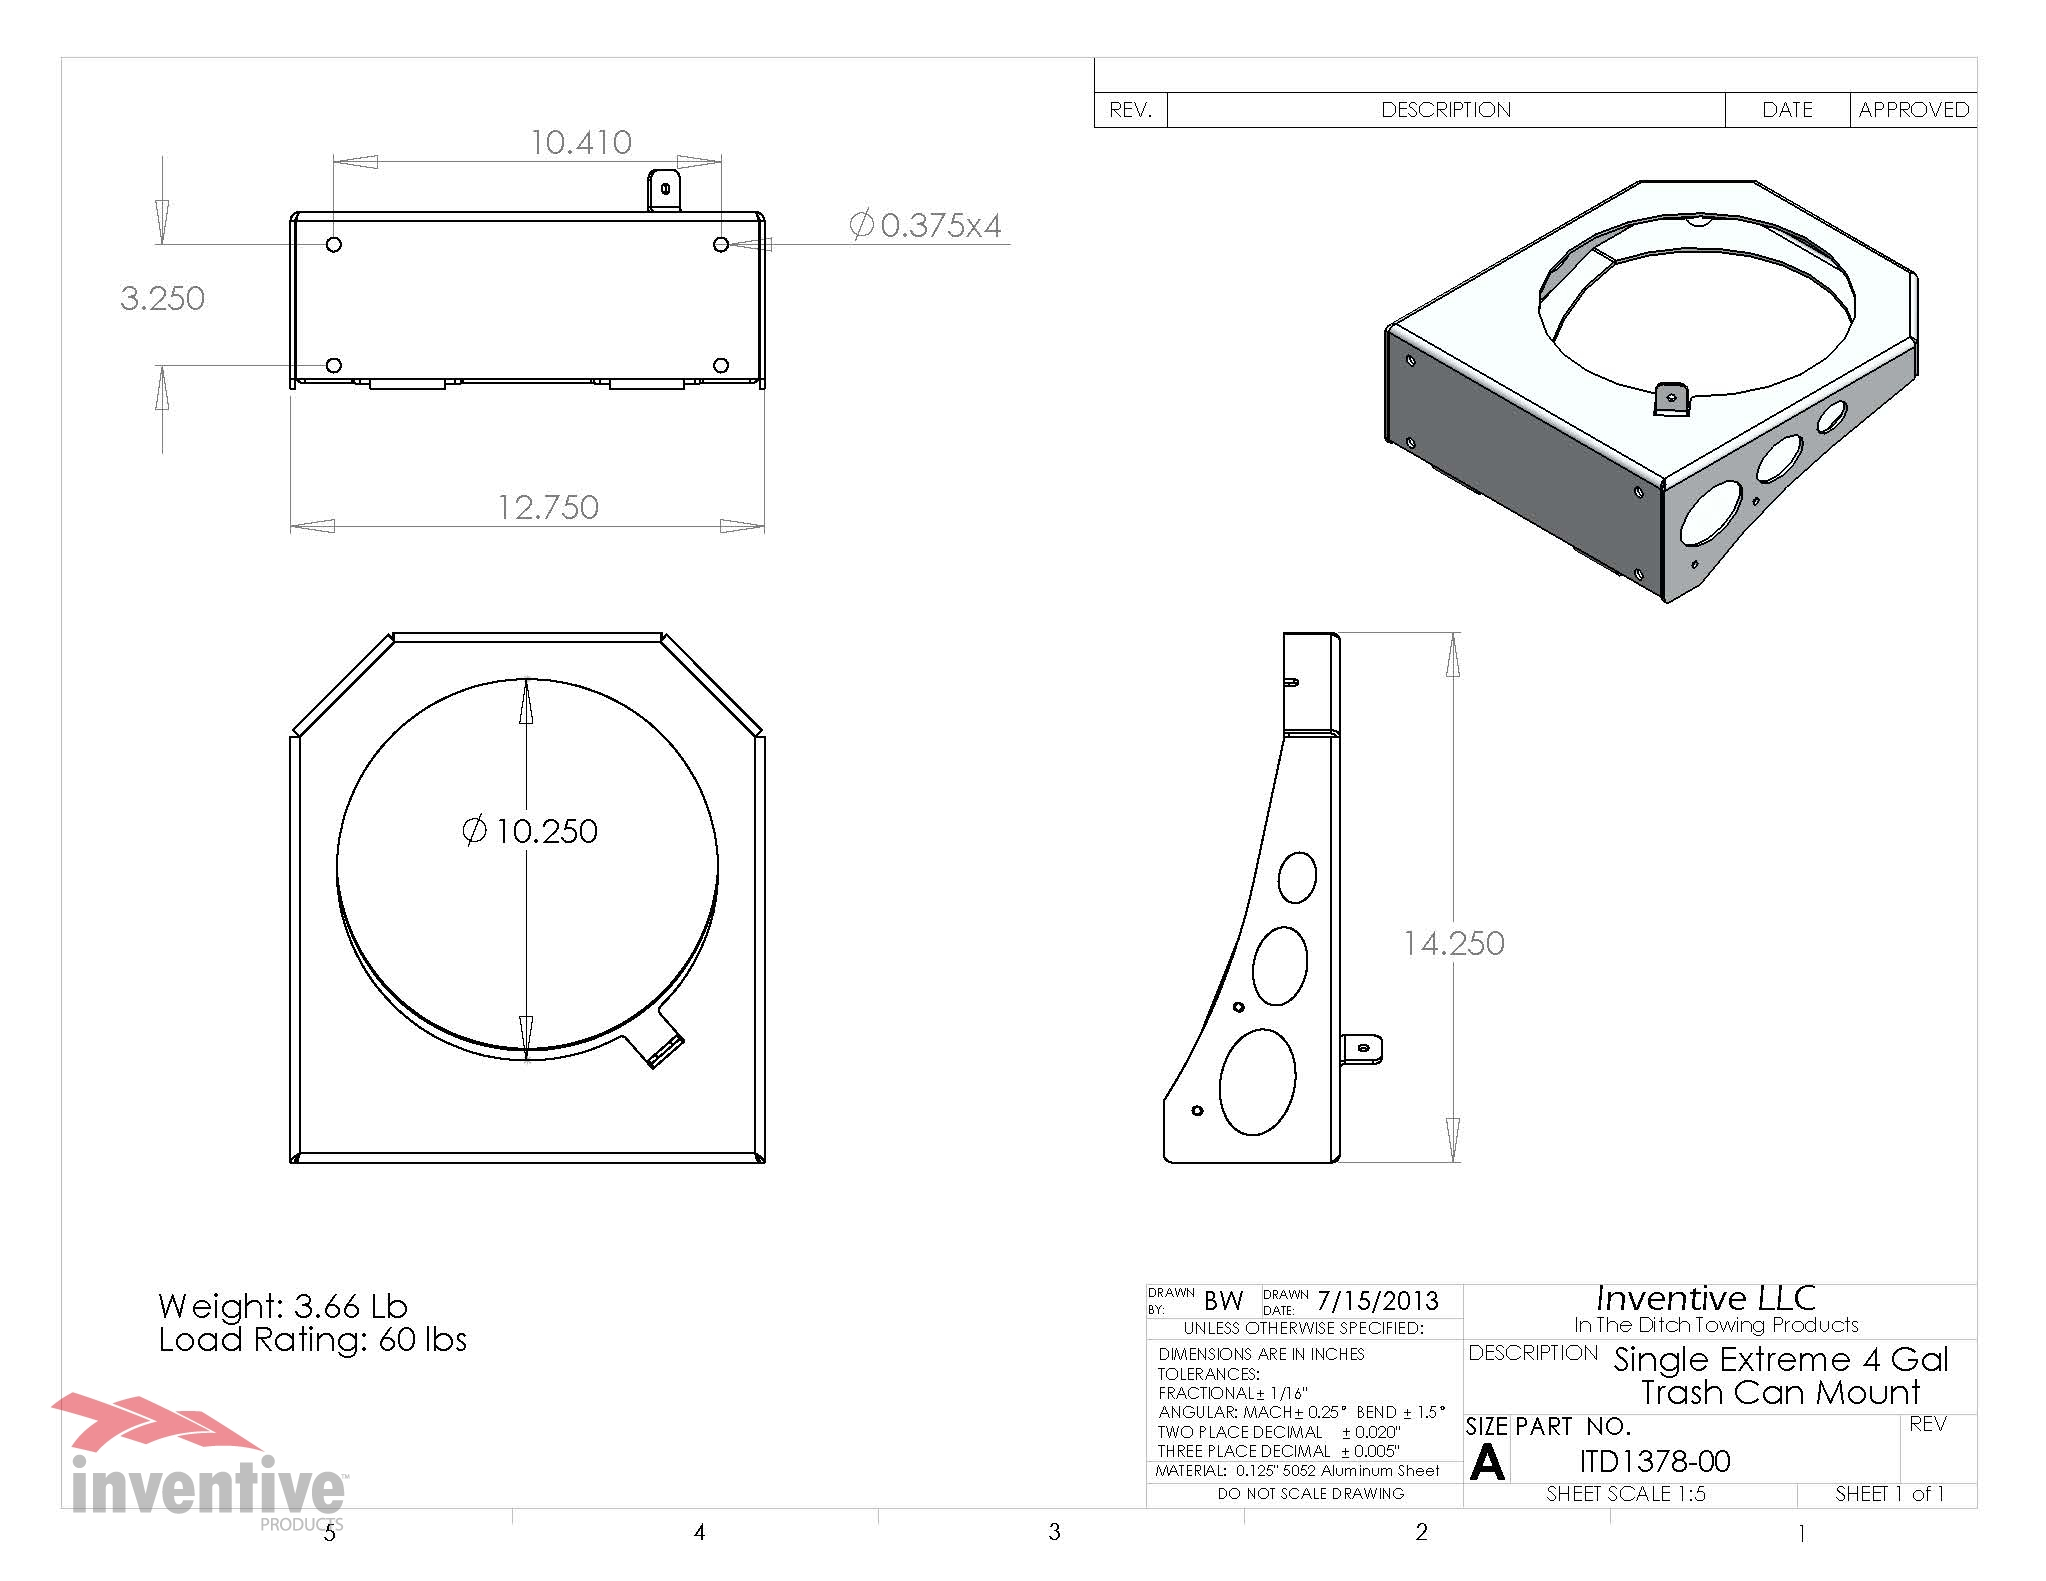 1378-Extreme duty trash can mount 4 gal Dimensions